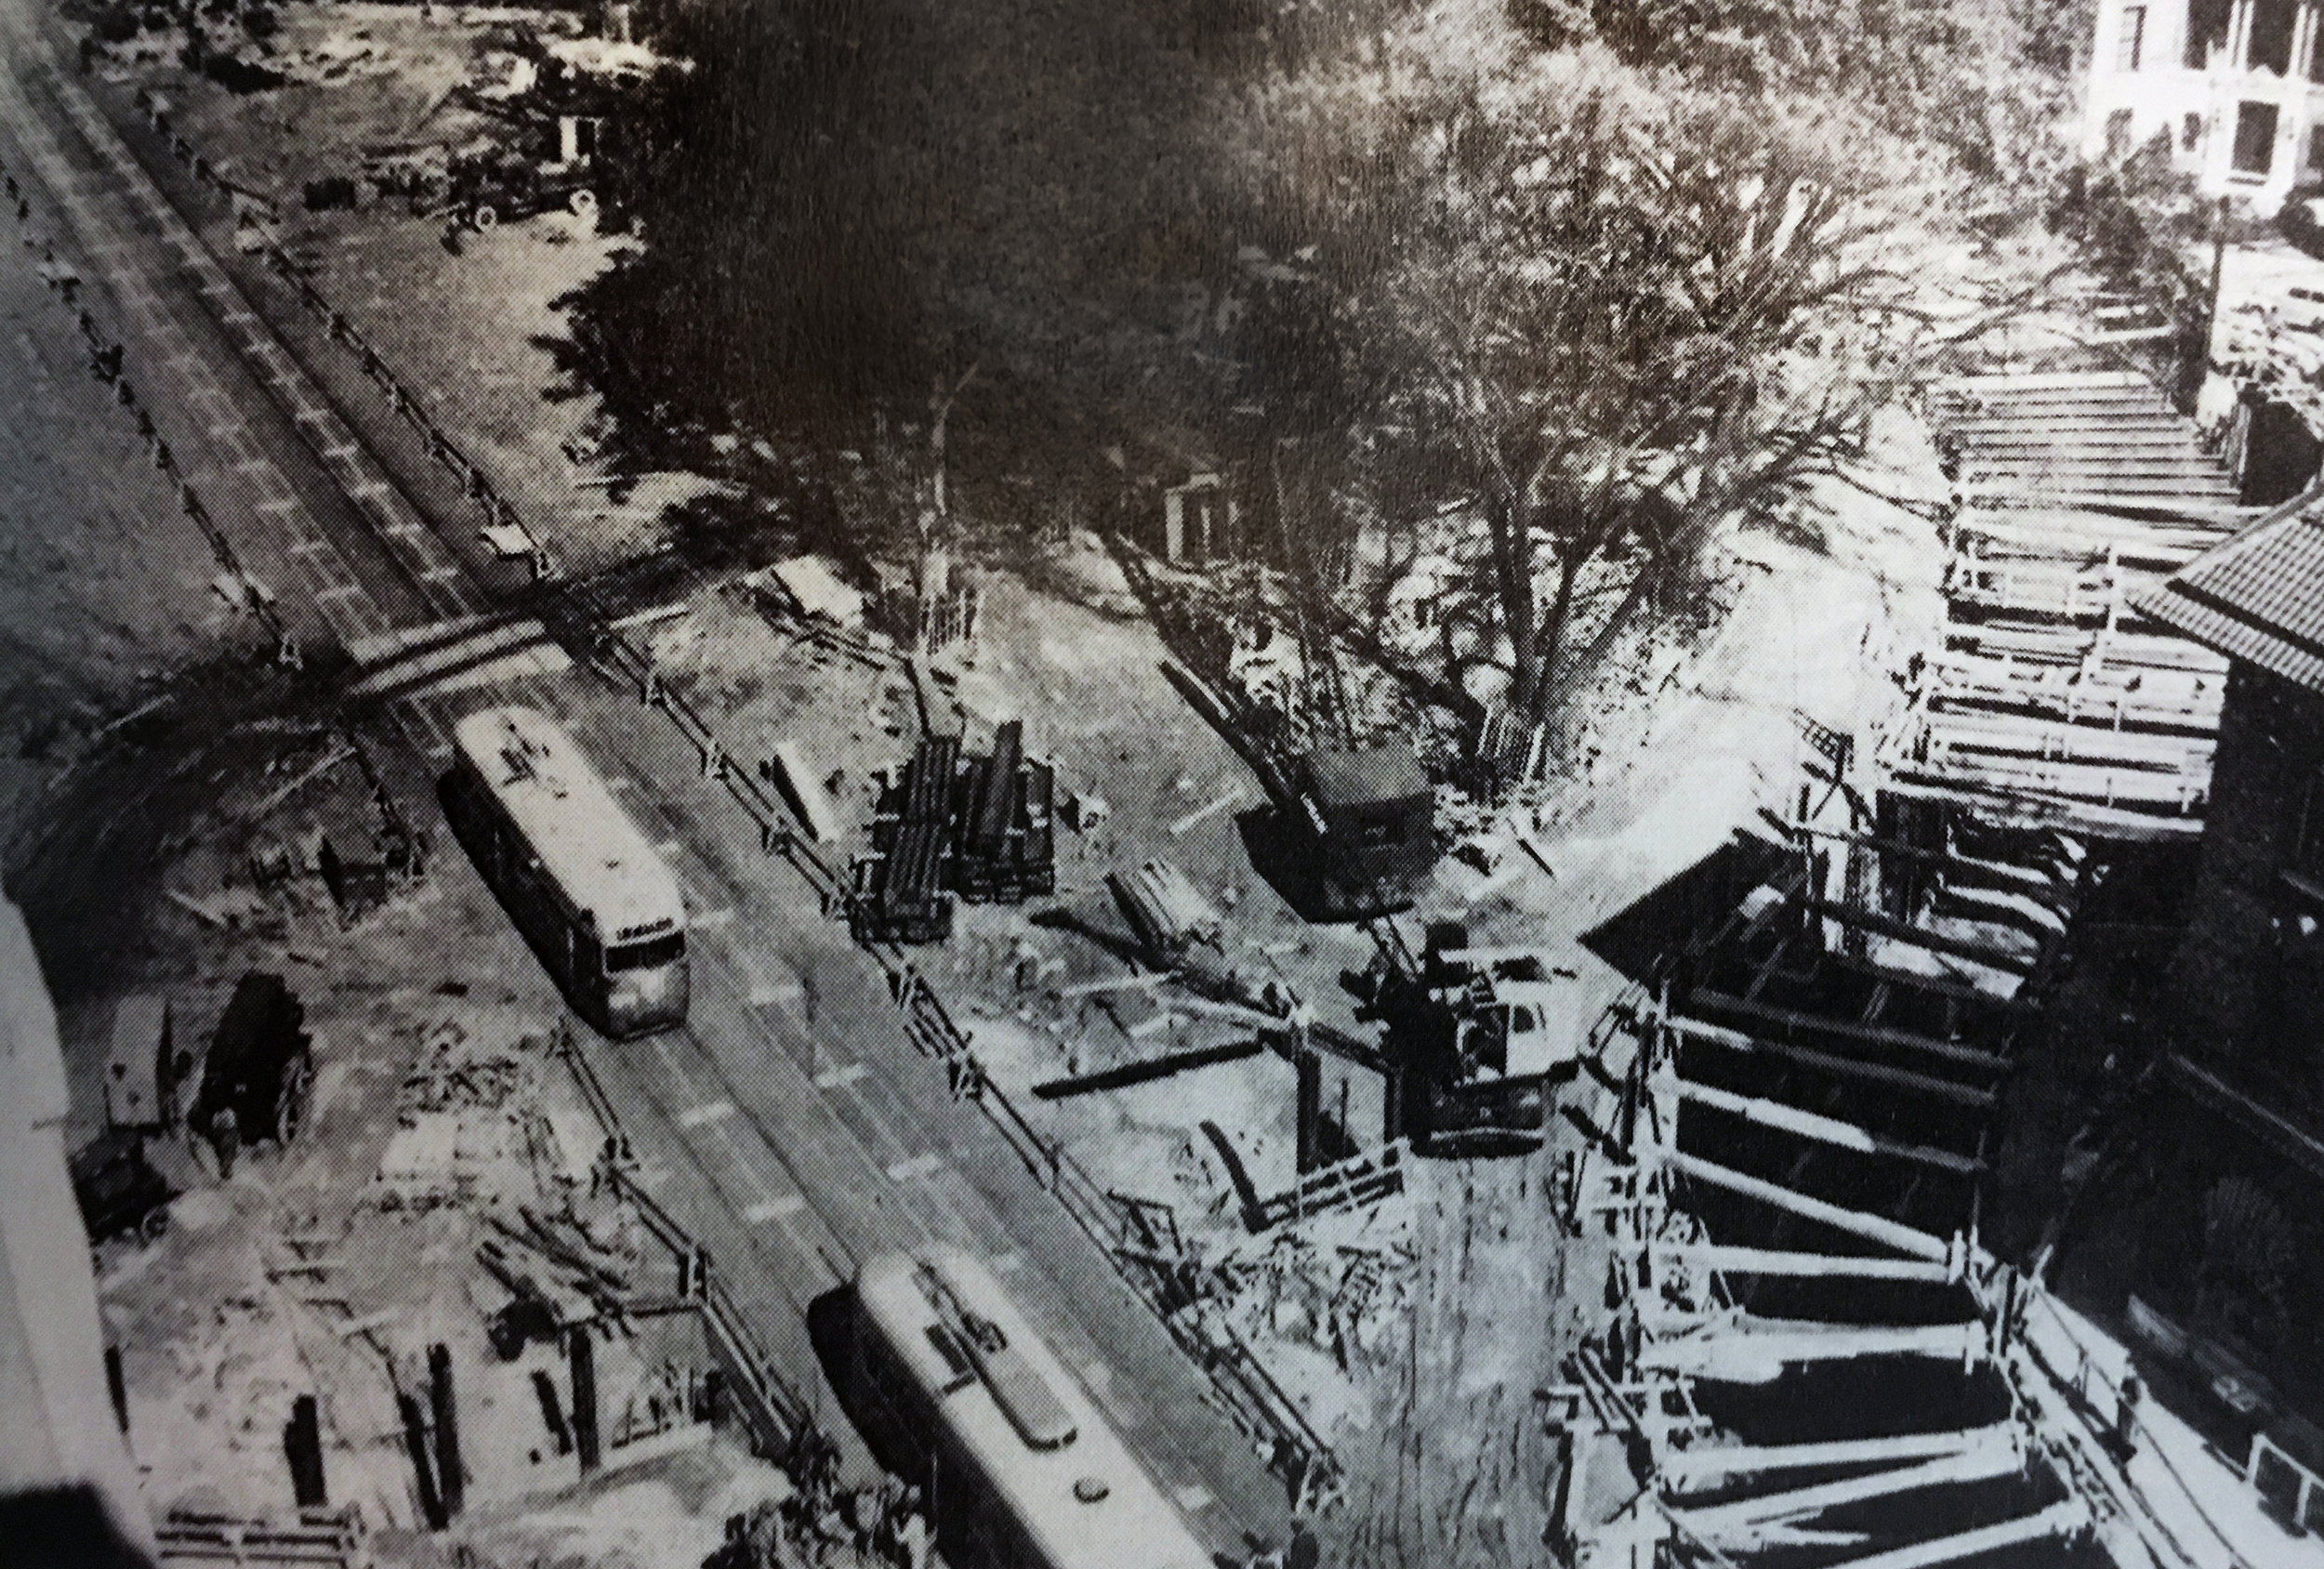 Cut and cover excavation continues on the Dupont Circle streetcar tunnel on November 15, 1948. Photo:   Washington Star   via MLK Library/Public Domain